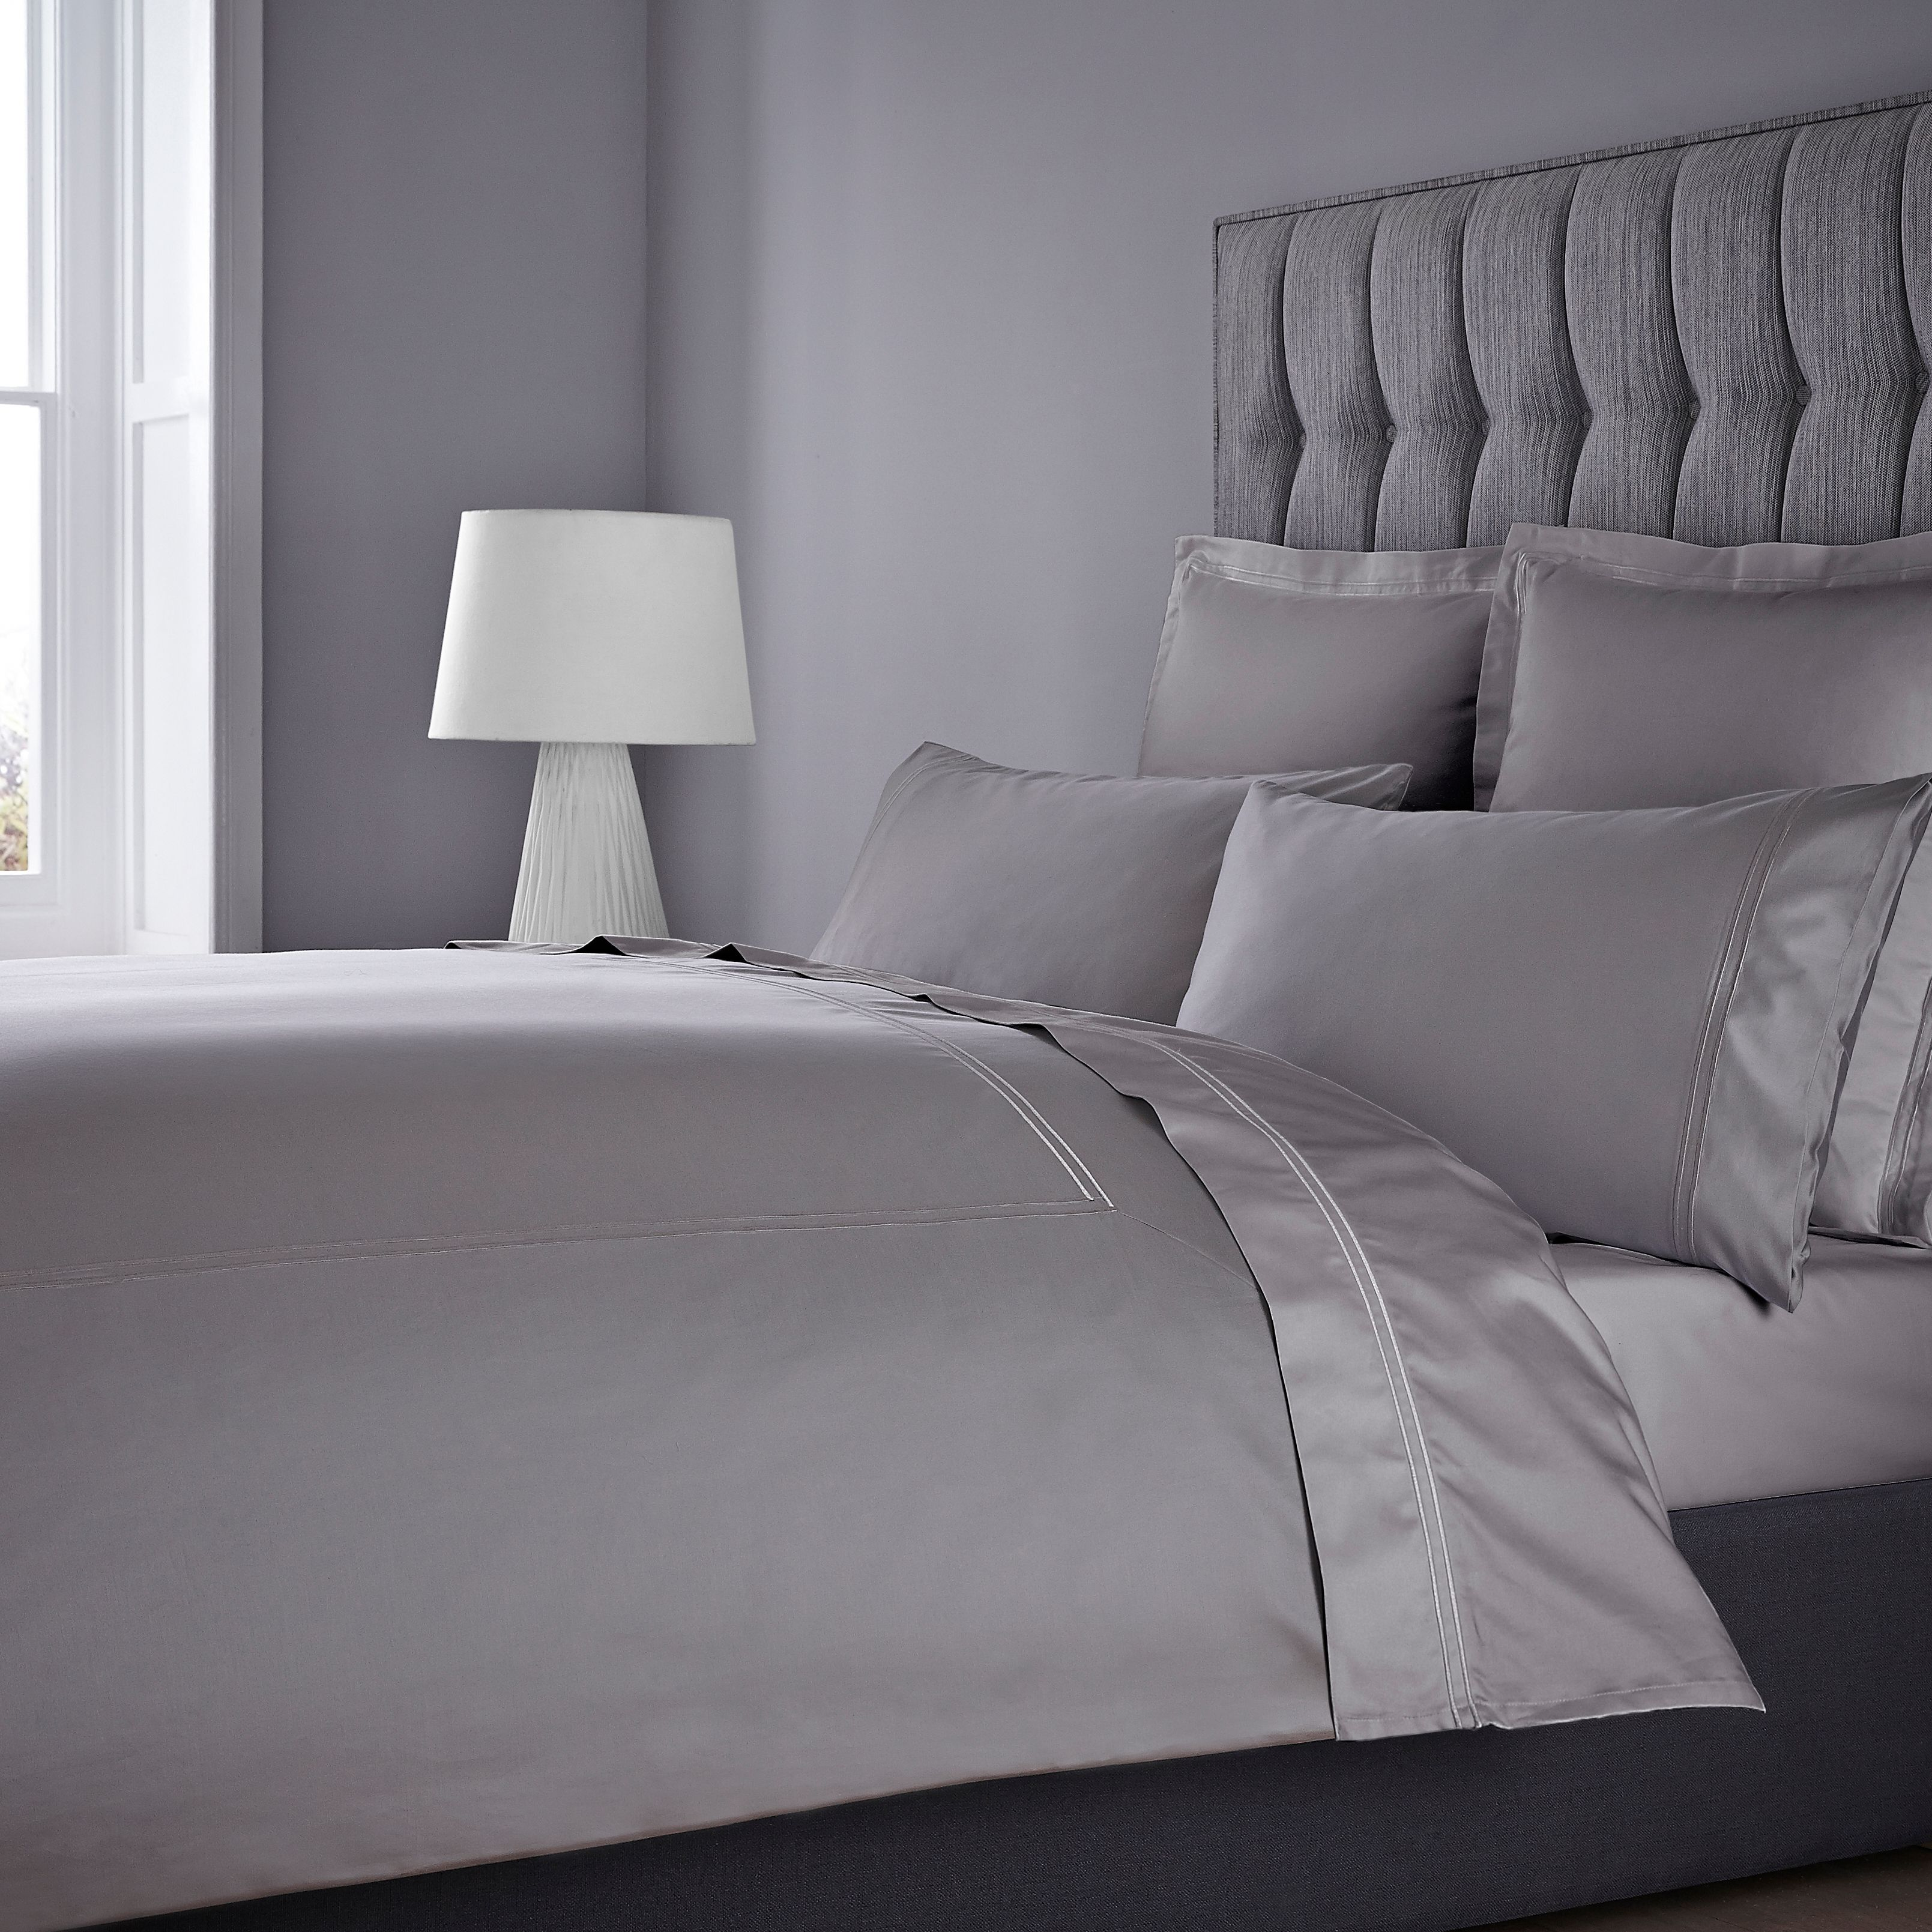 Luxury Hotel Collection 1000 TC supima cotton duvet cover